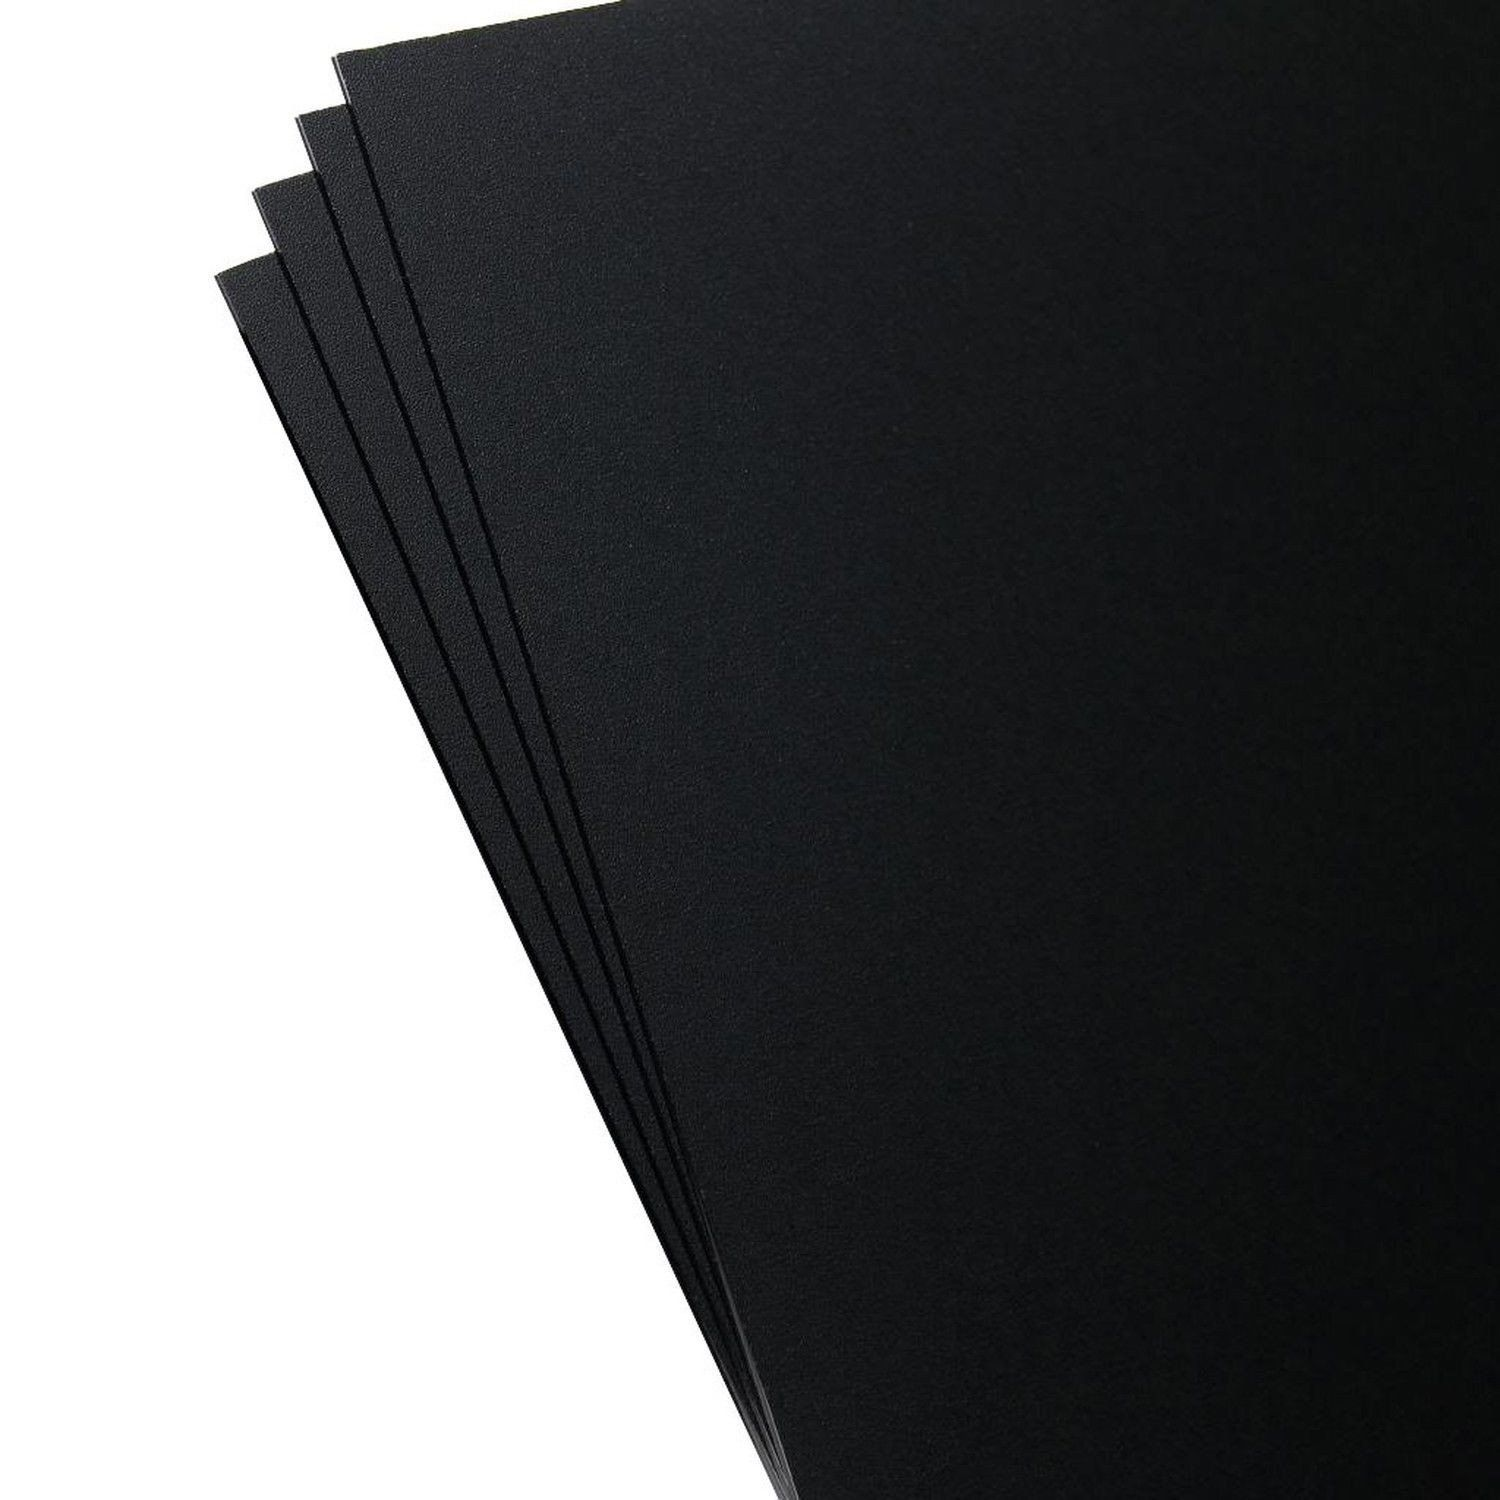 4 Kydex Plastic Sheets Black 12 X 12 X 1 16 0 060 Plastic Sheets Kydex Black Sheets